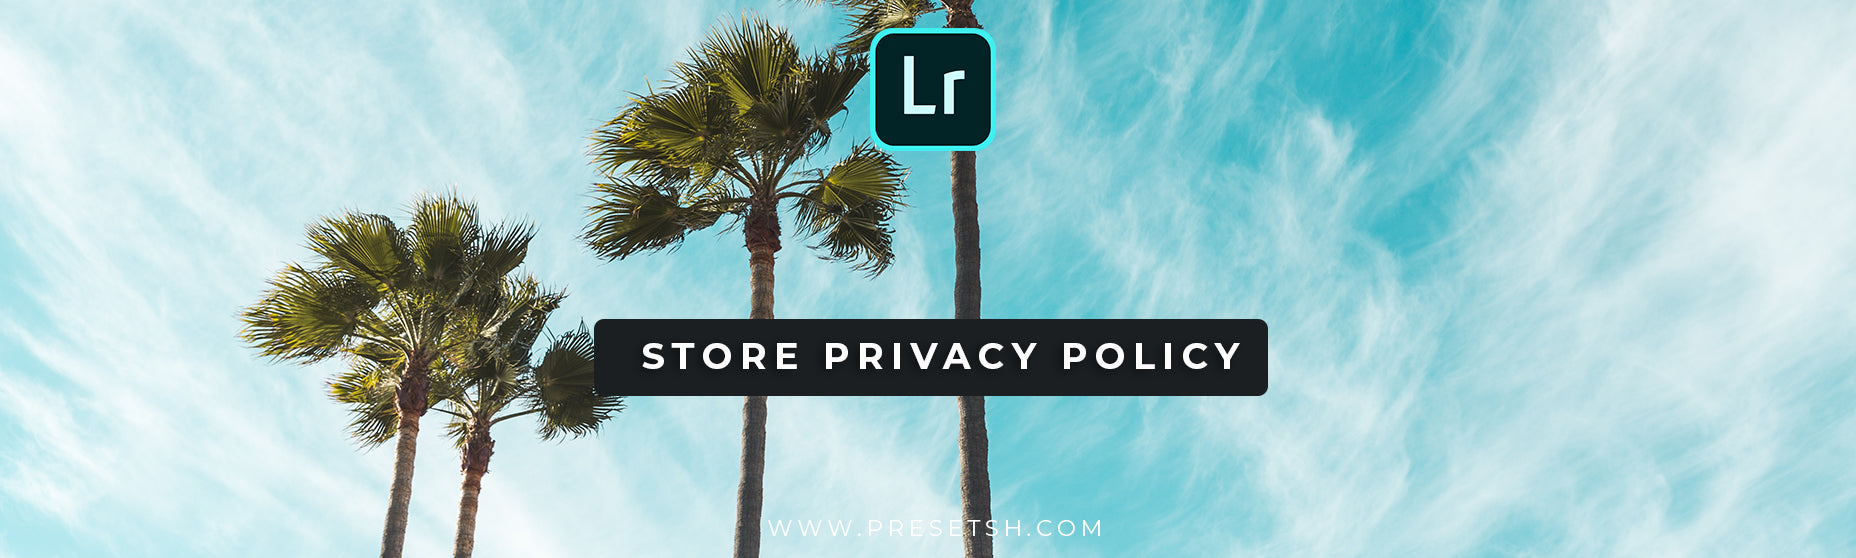 Store Privacy Policy